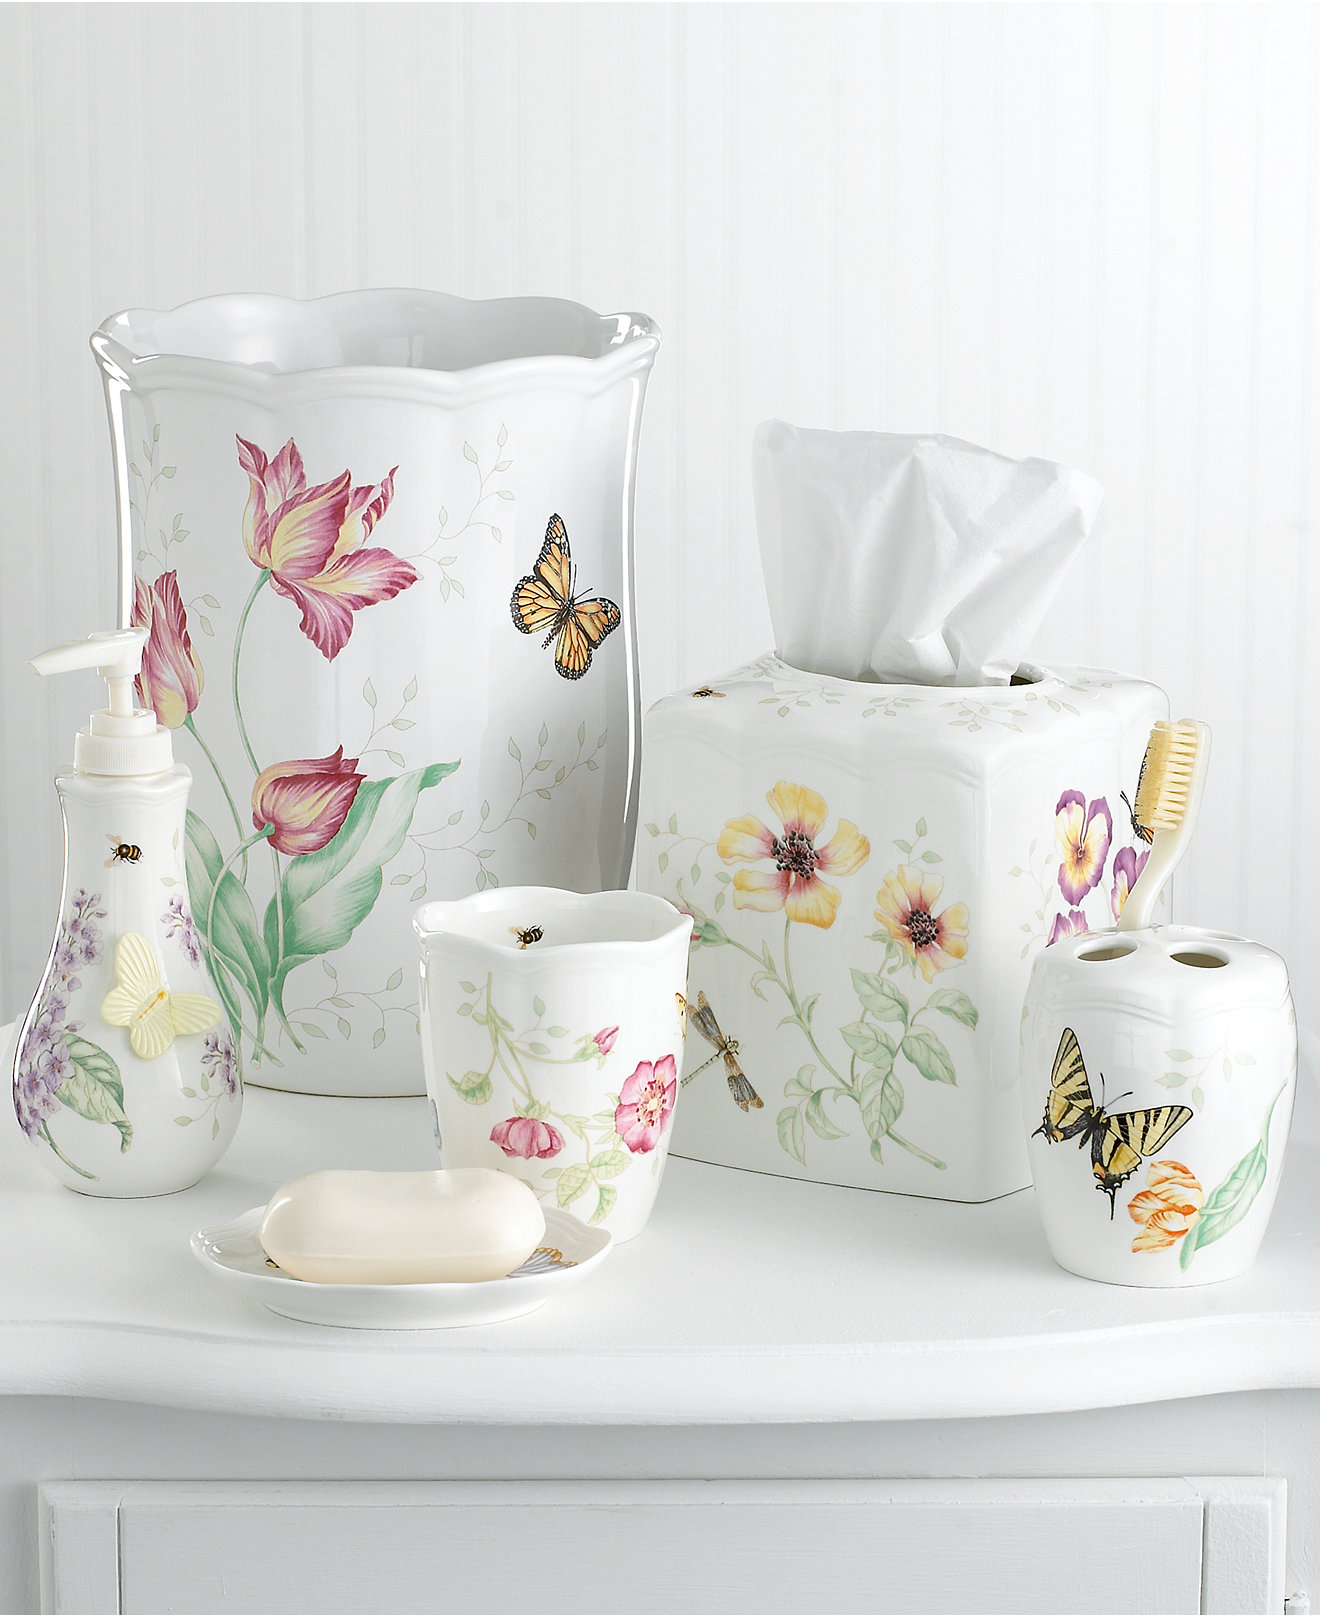 Lenox Butterfly Meadow Bath Accessories Bathroom Accessories Bed Bath Macy S